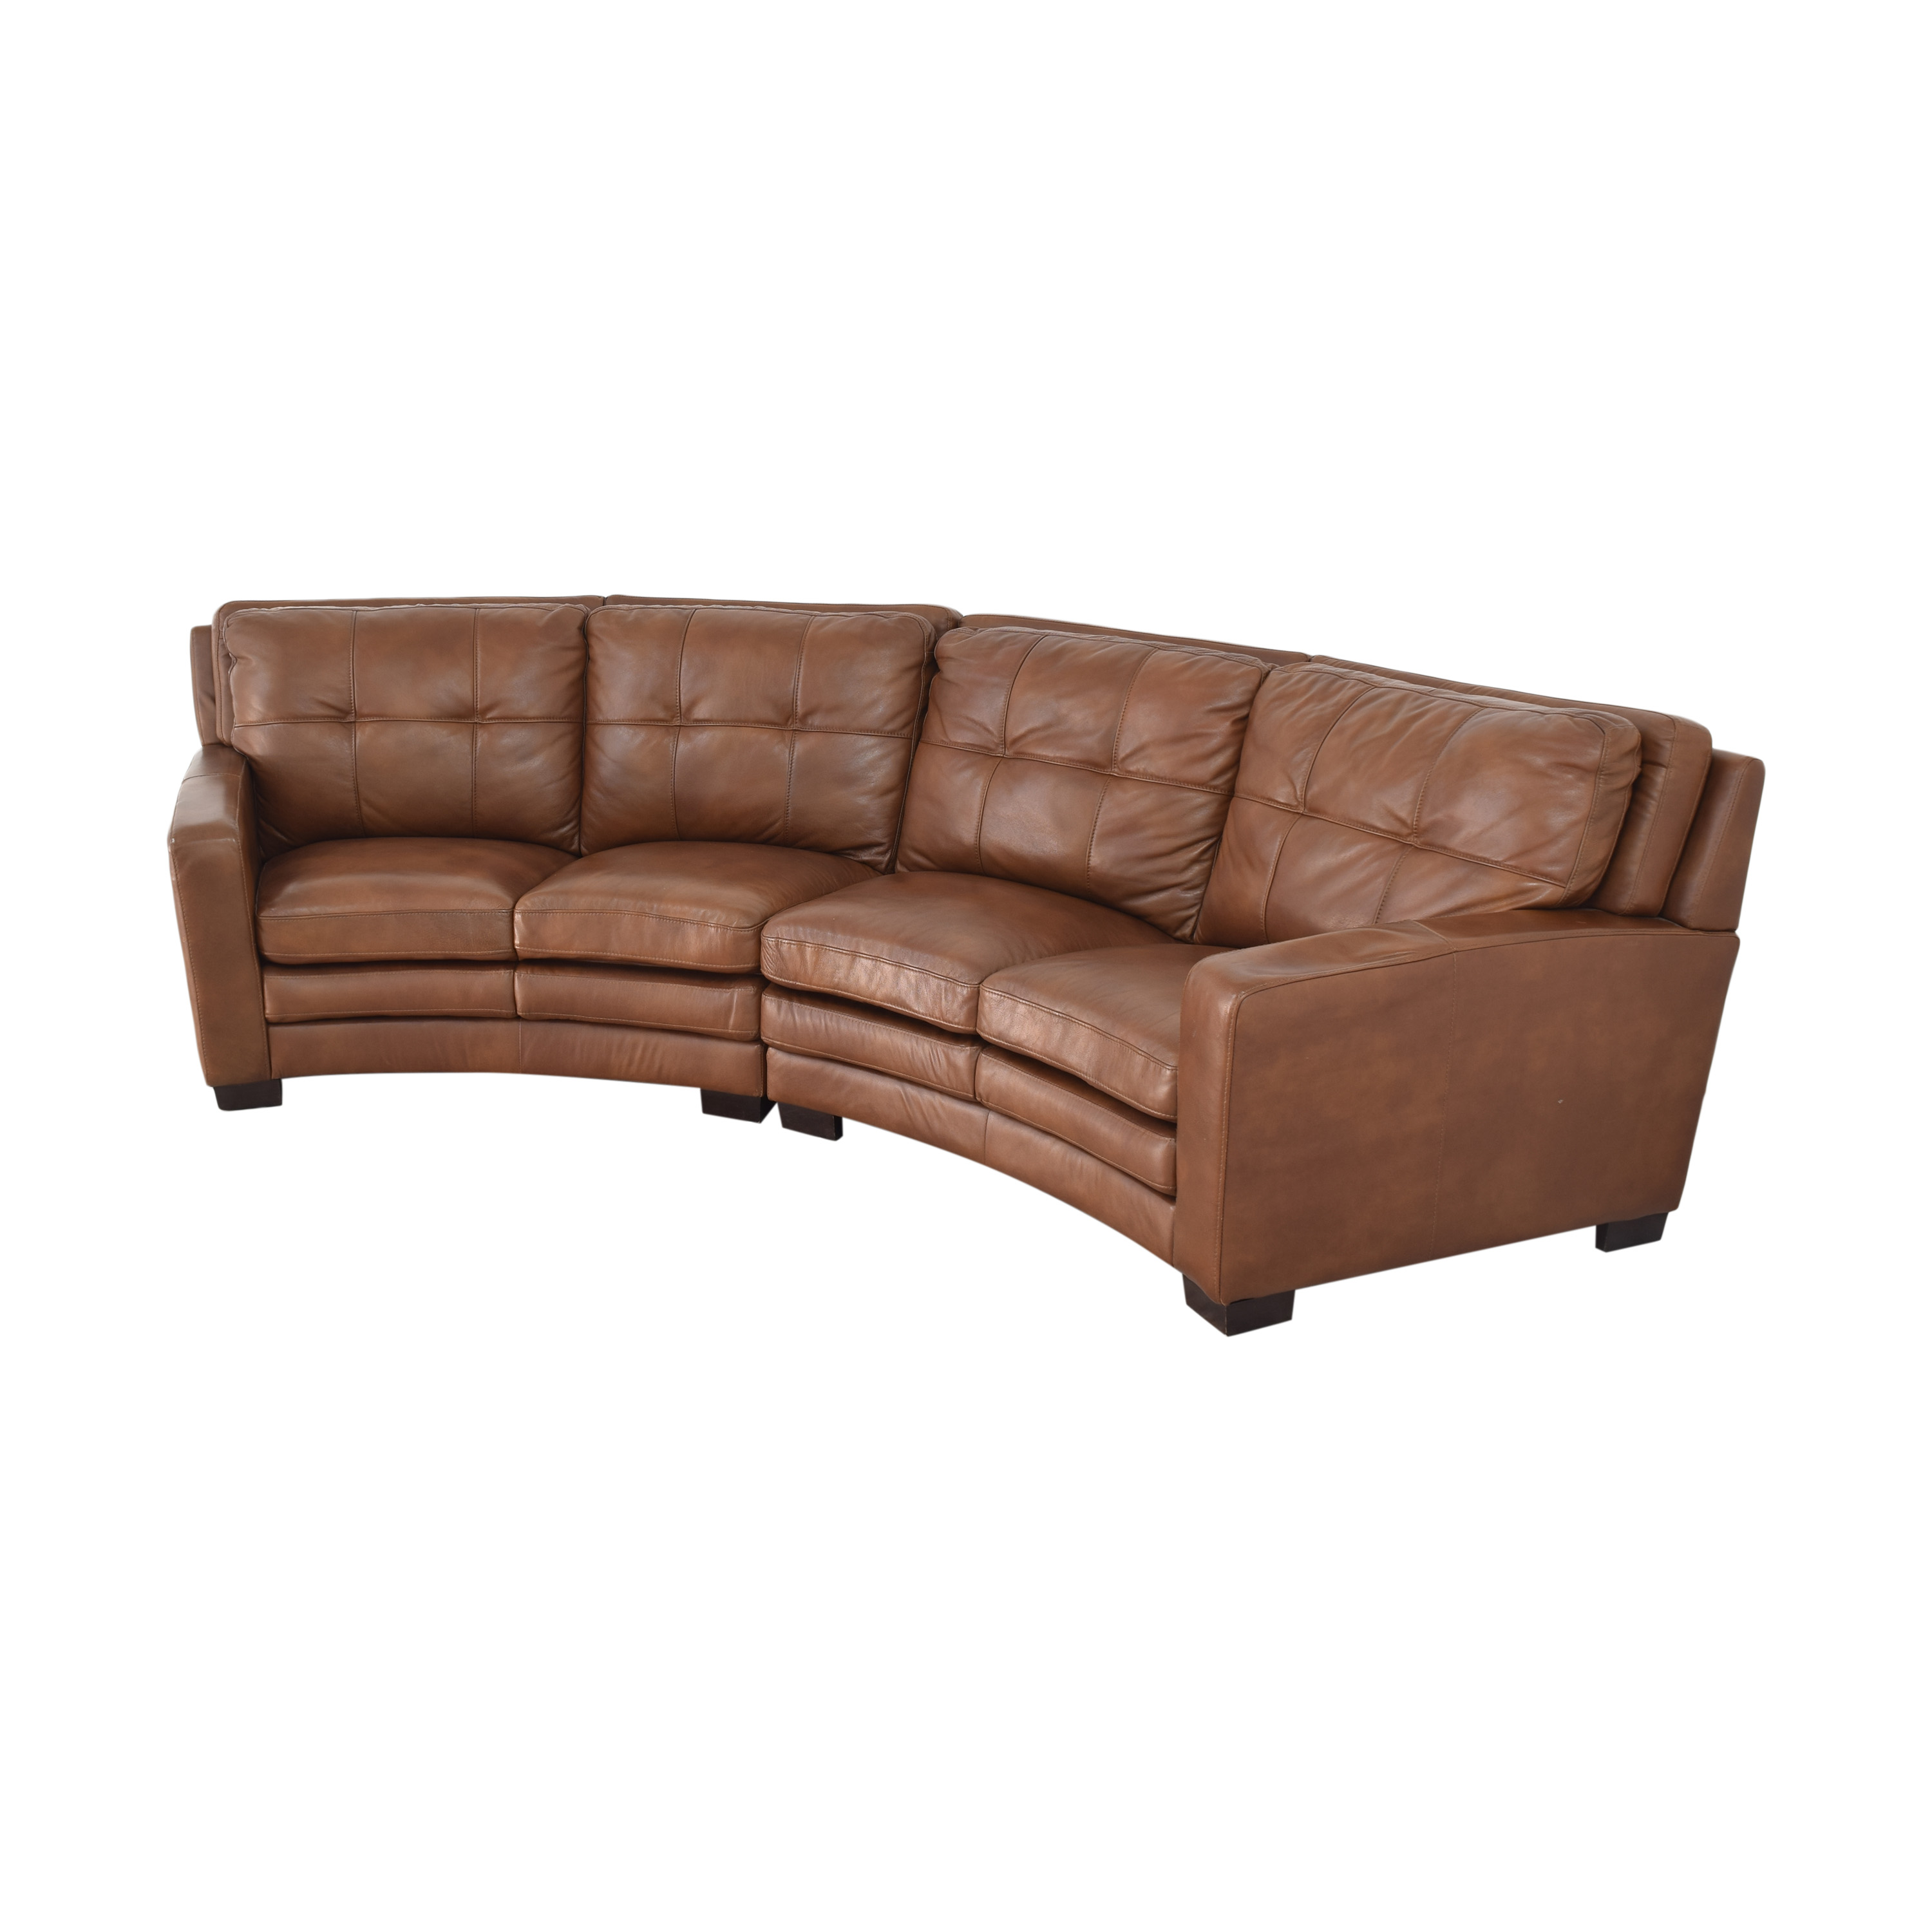 buy Crescent Sectional Sofa with Ottoman